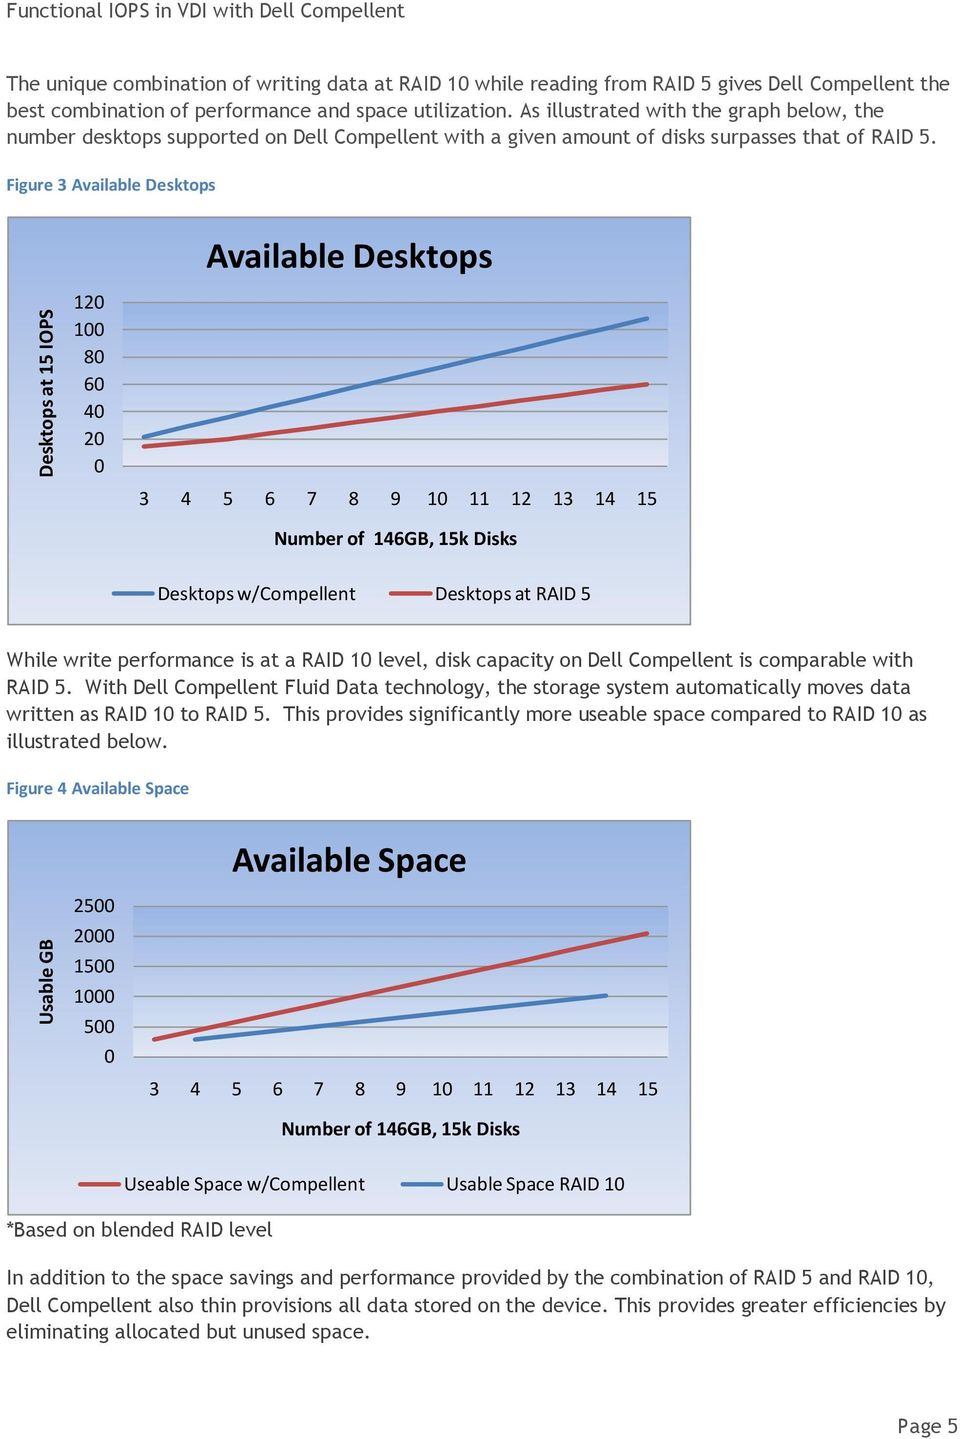 Figure 3 Available Desktops Available Desktops Desktops at 15 IOPS 120 100 80 60 40 20 0 3 4 5 6 7 8 9 10 11 12 13 14 15 Number of 146GB, 15k Disks Desktops w/compellent Desktops at RAID 5 While